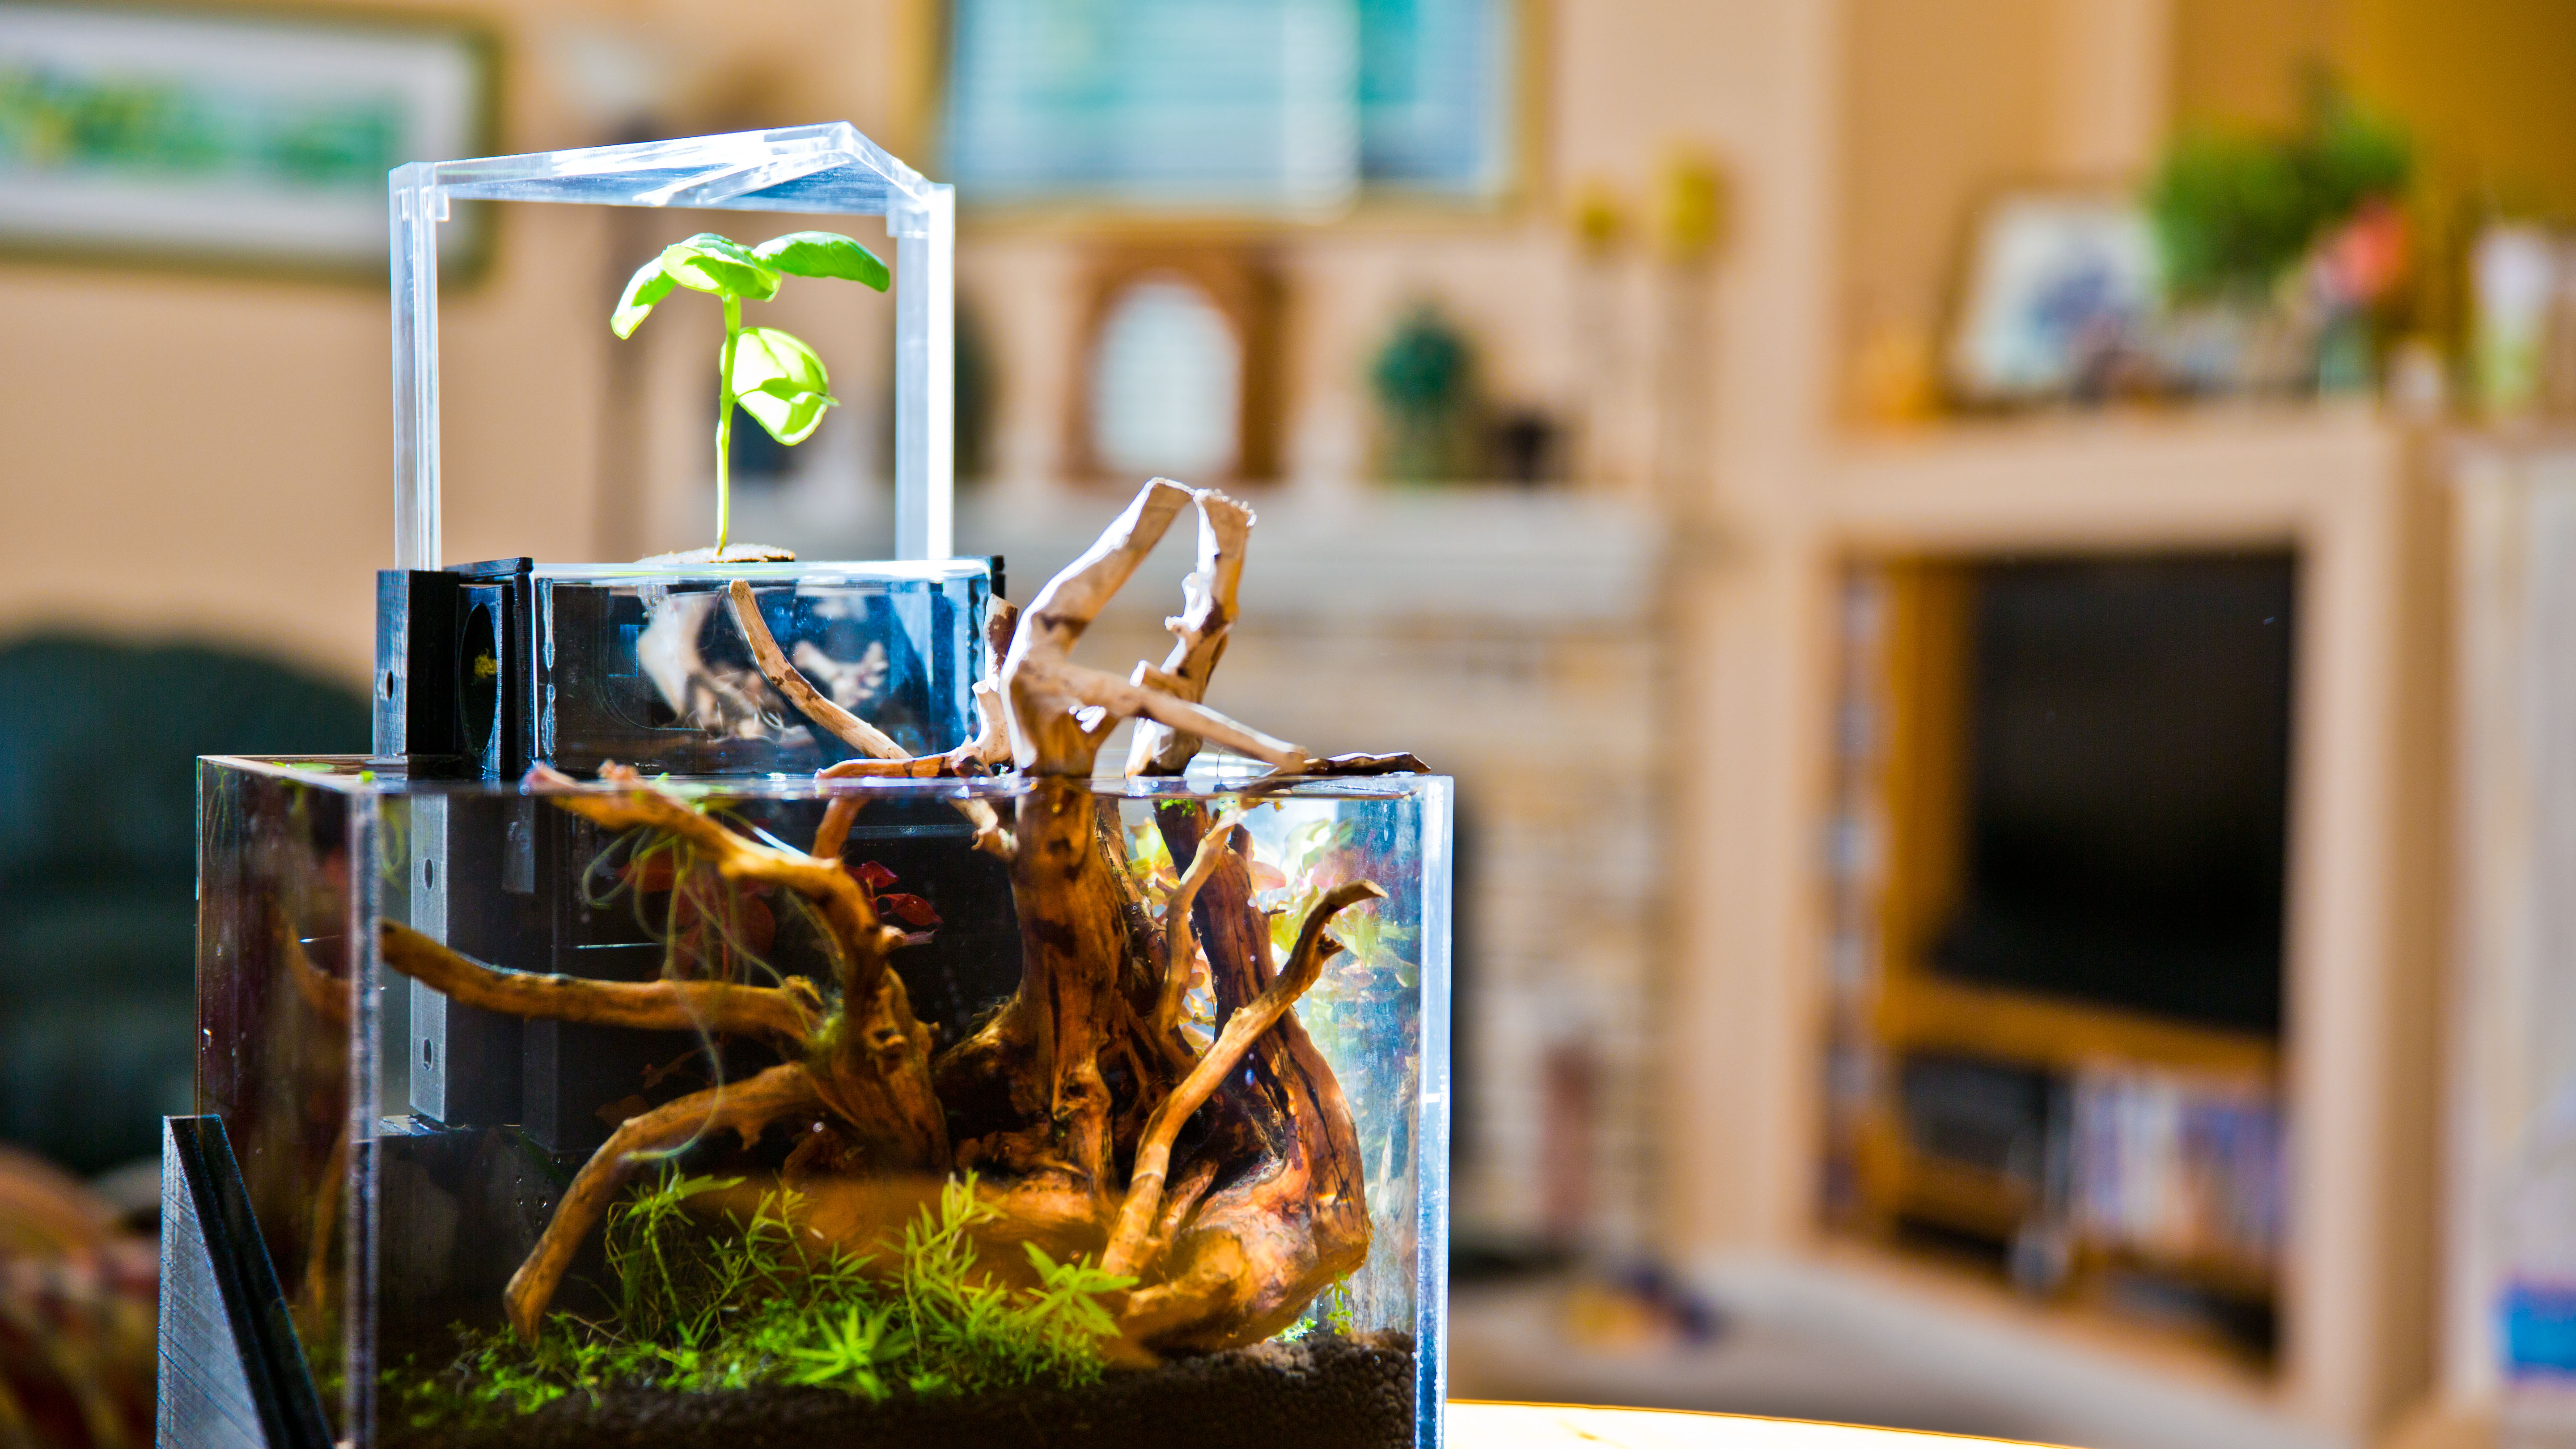 The EcoQube Is The Coolest Gift Ever!